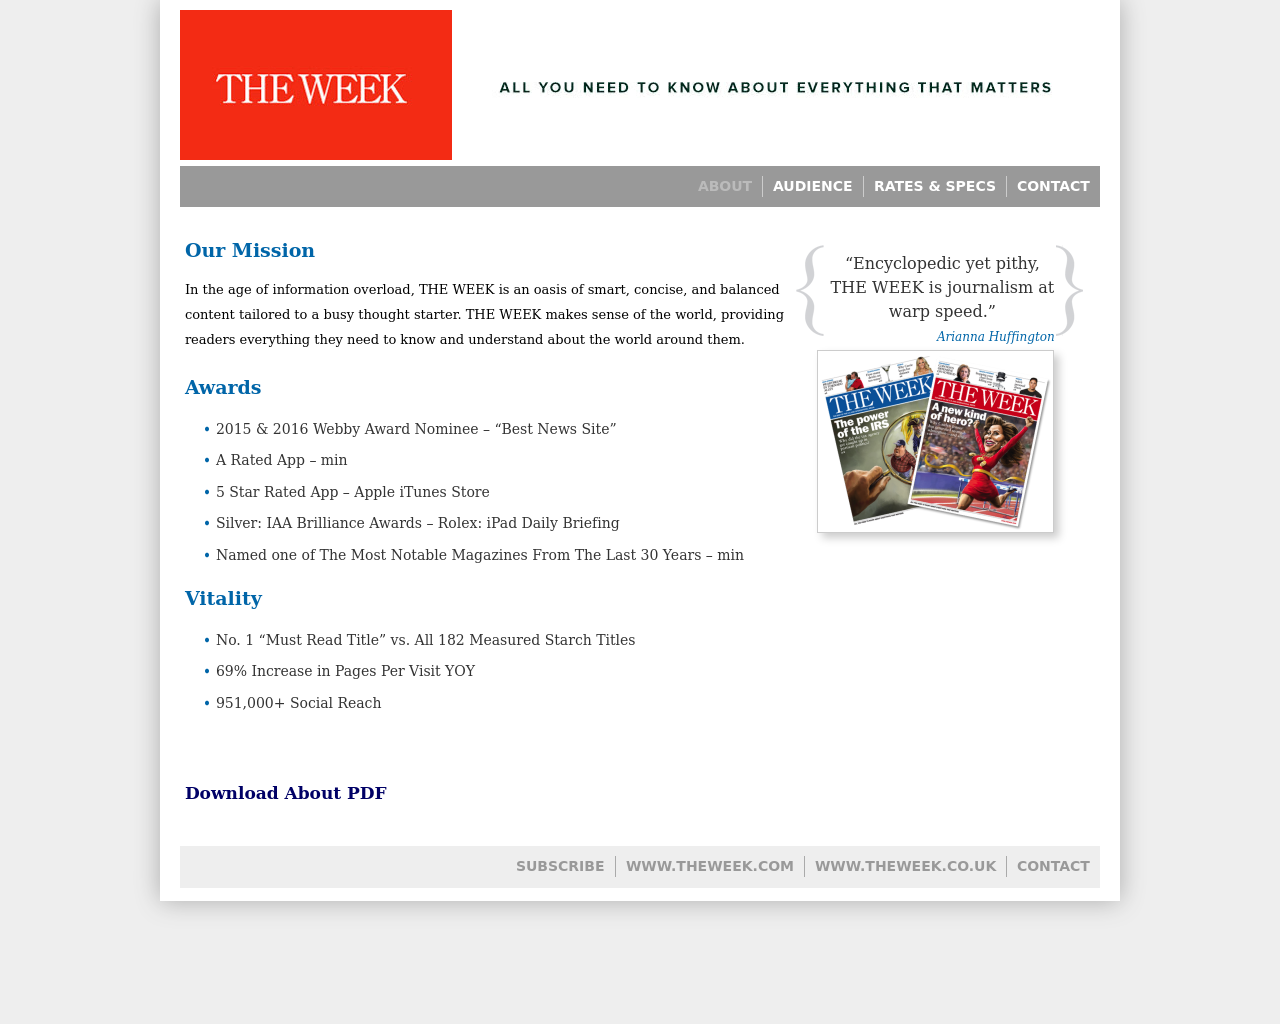 THE-WEEK-Publications-Advertising-Reviews-Pricing